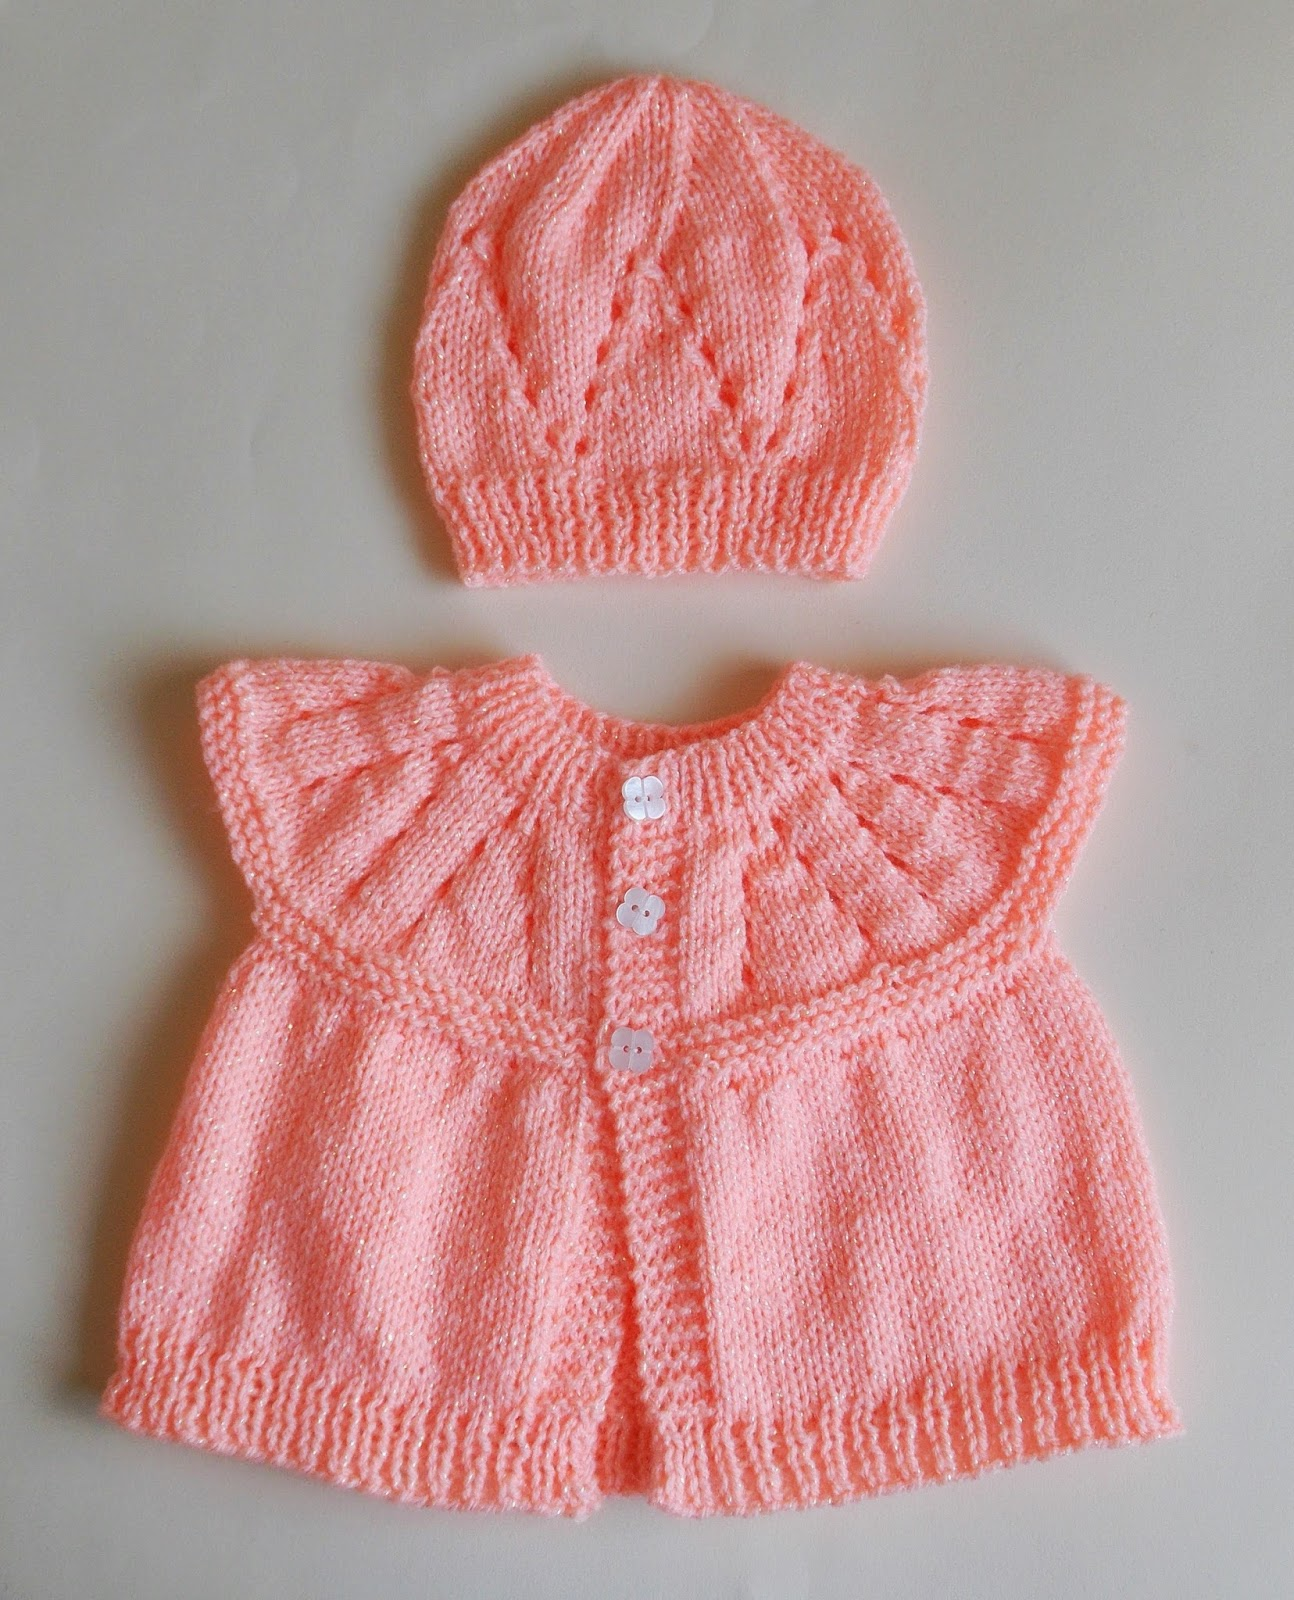 Knitting Patterns Baby Pinterest : mariannas lazy daisy days: All-in-one Knitted Baby Tops